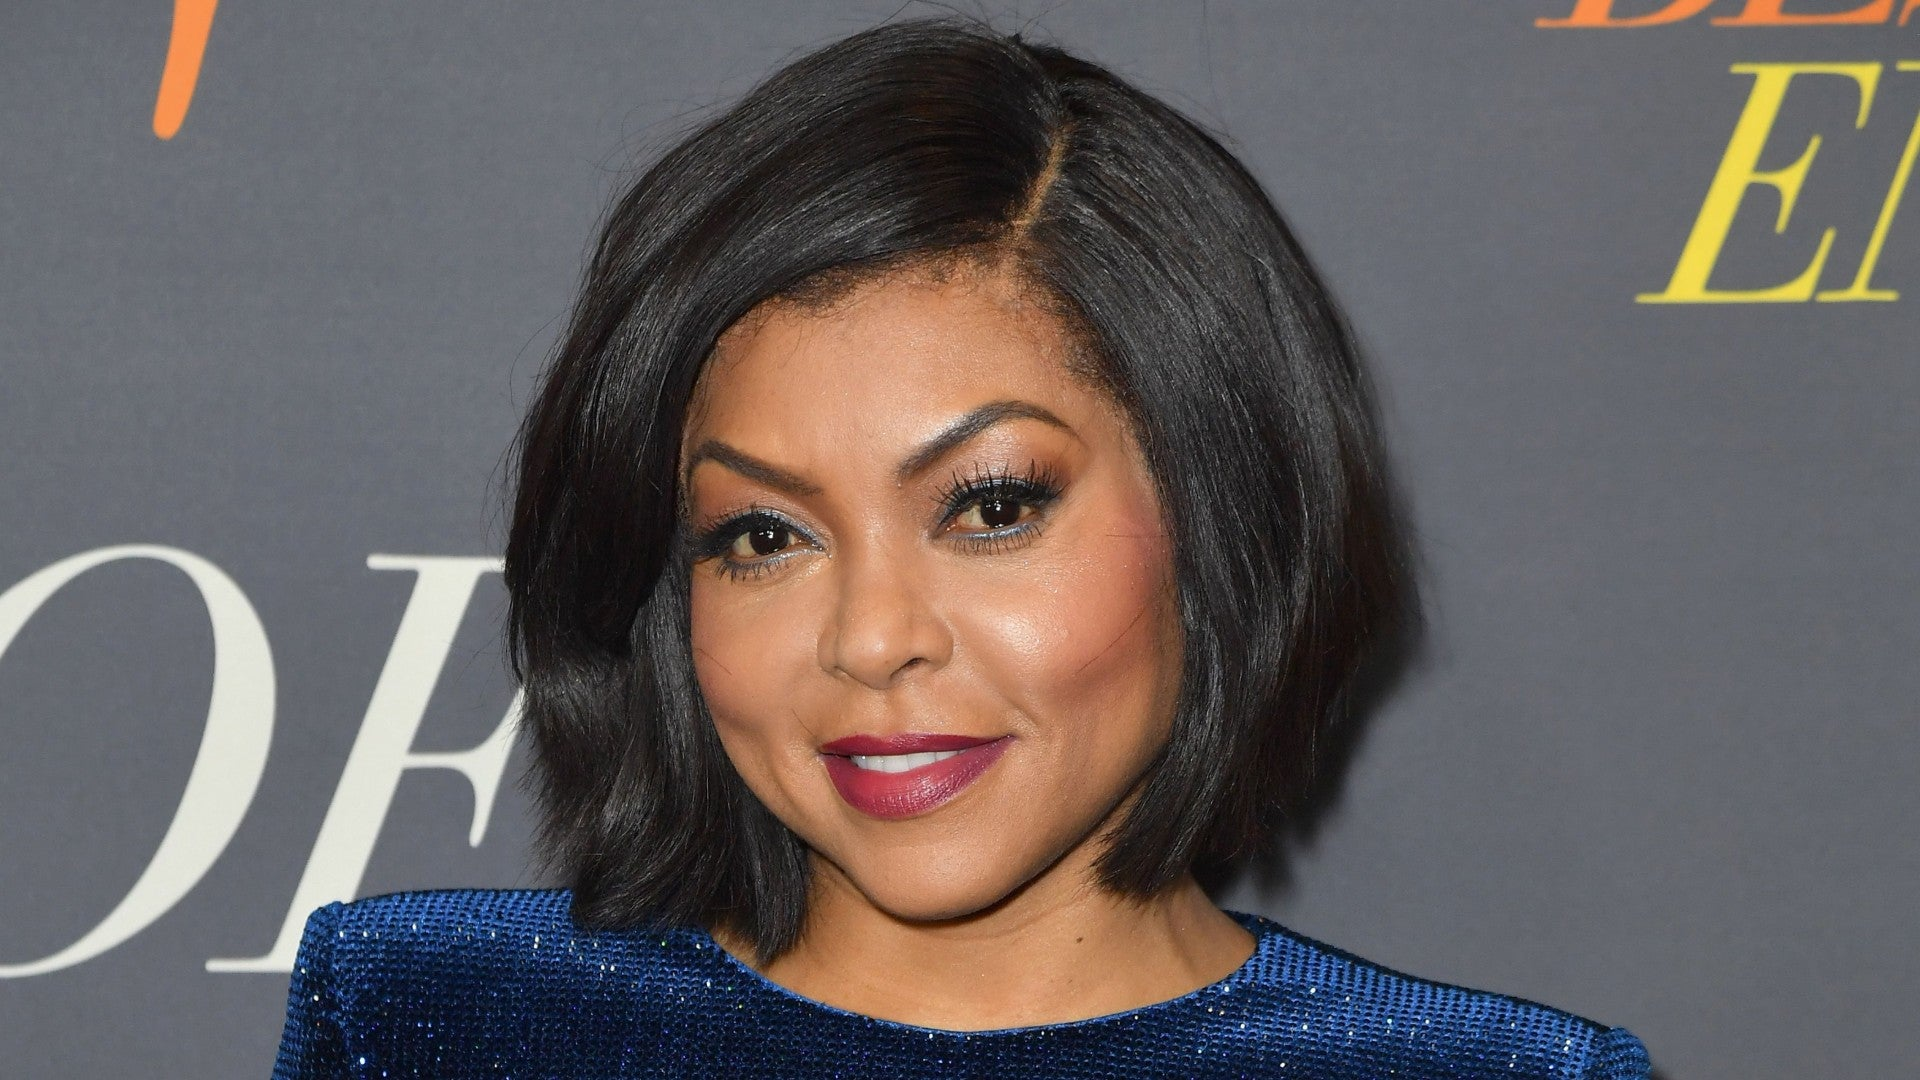 Taraji Teases Hair Care Line With Twist Out Video On Instagram